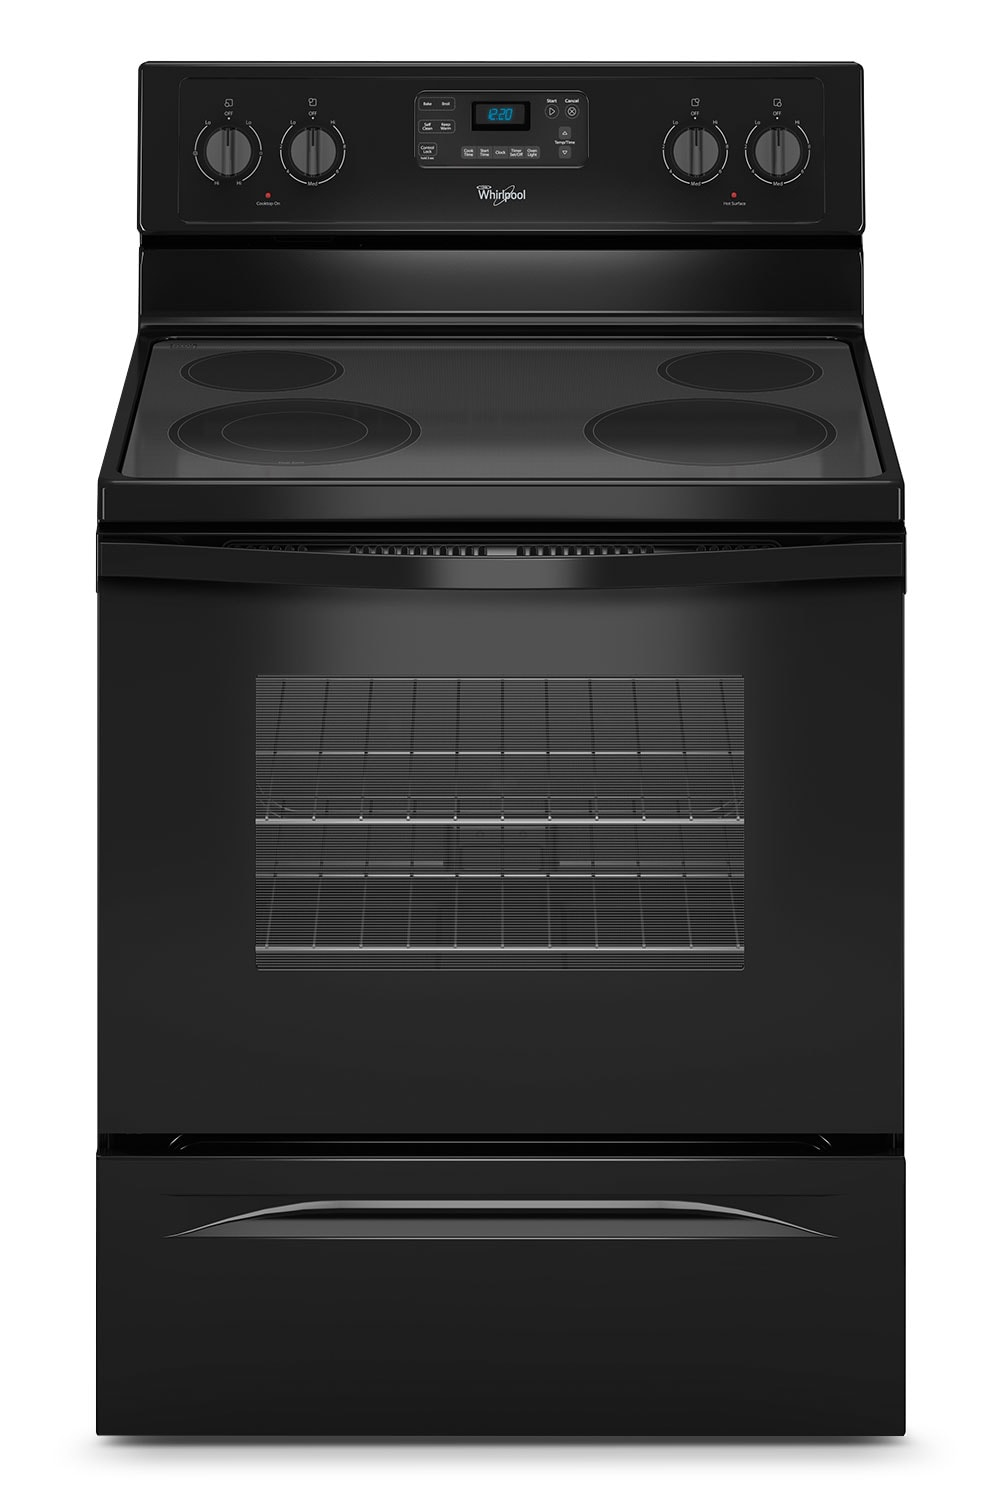 Cooking Products - Whirlpool 5.3 Cu. Ft. Freestanding Electric Range – YWFE515S0EB